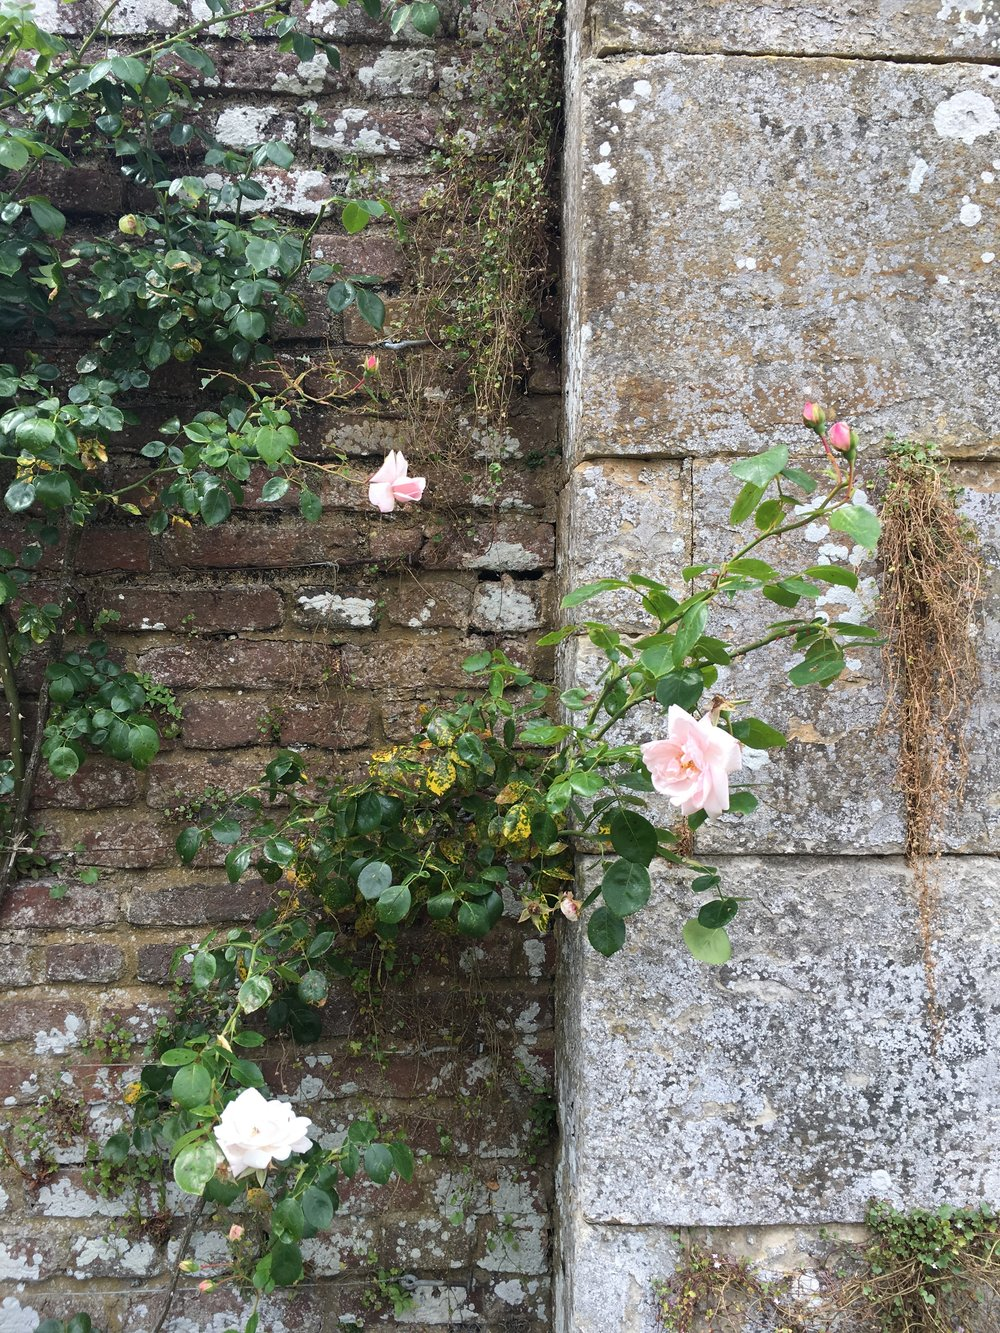 Those roses on a brick wall again! The classic rose is a beautiful & traditional flower to use at your wedding.